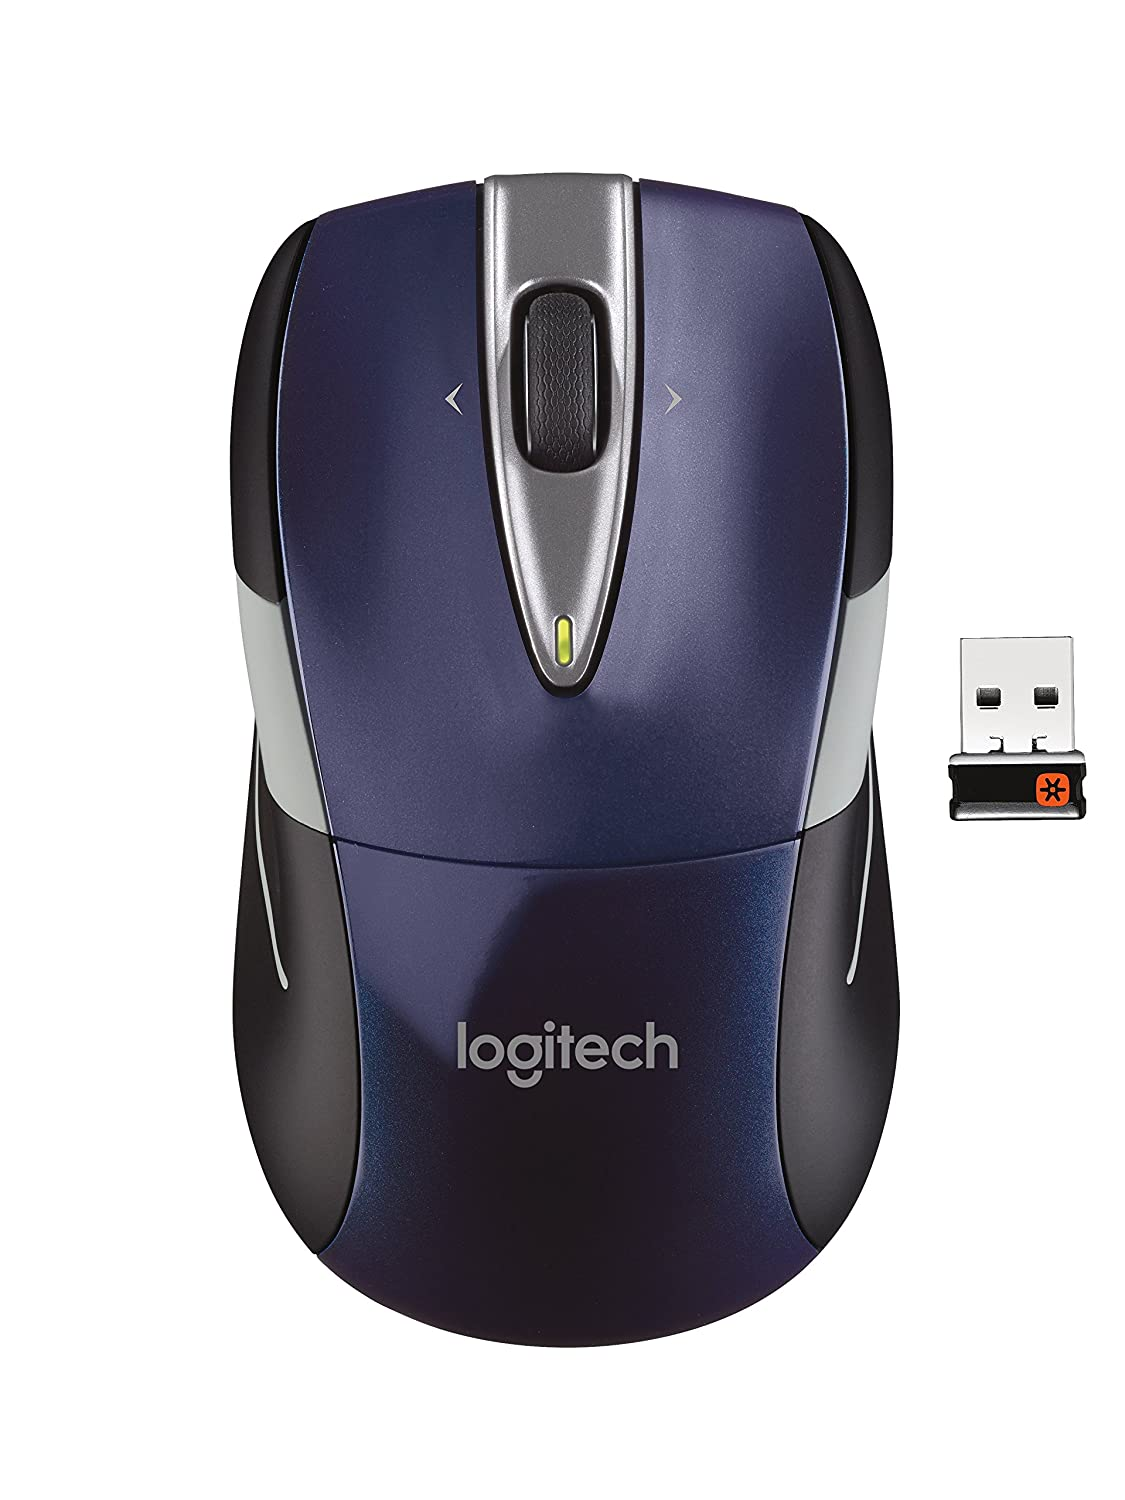 Logitech Wireless Mouse M525 - Navy/Grey